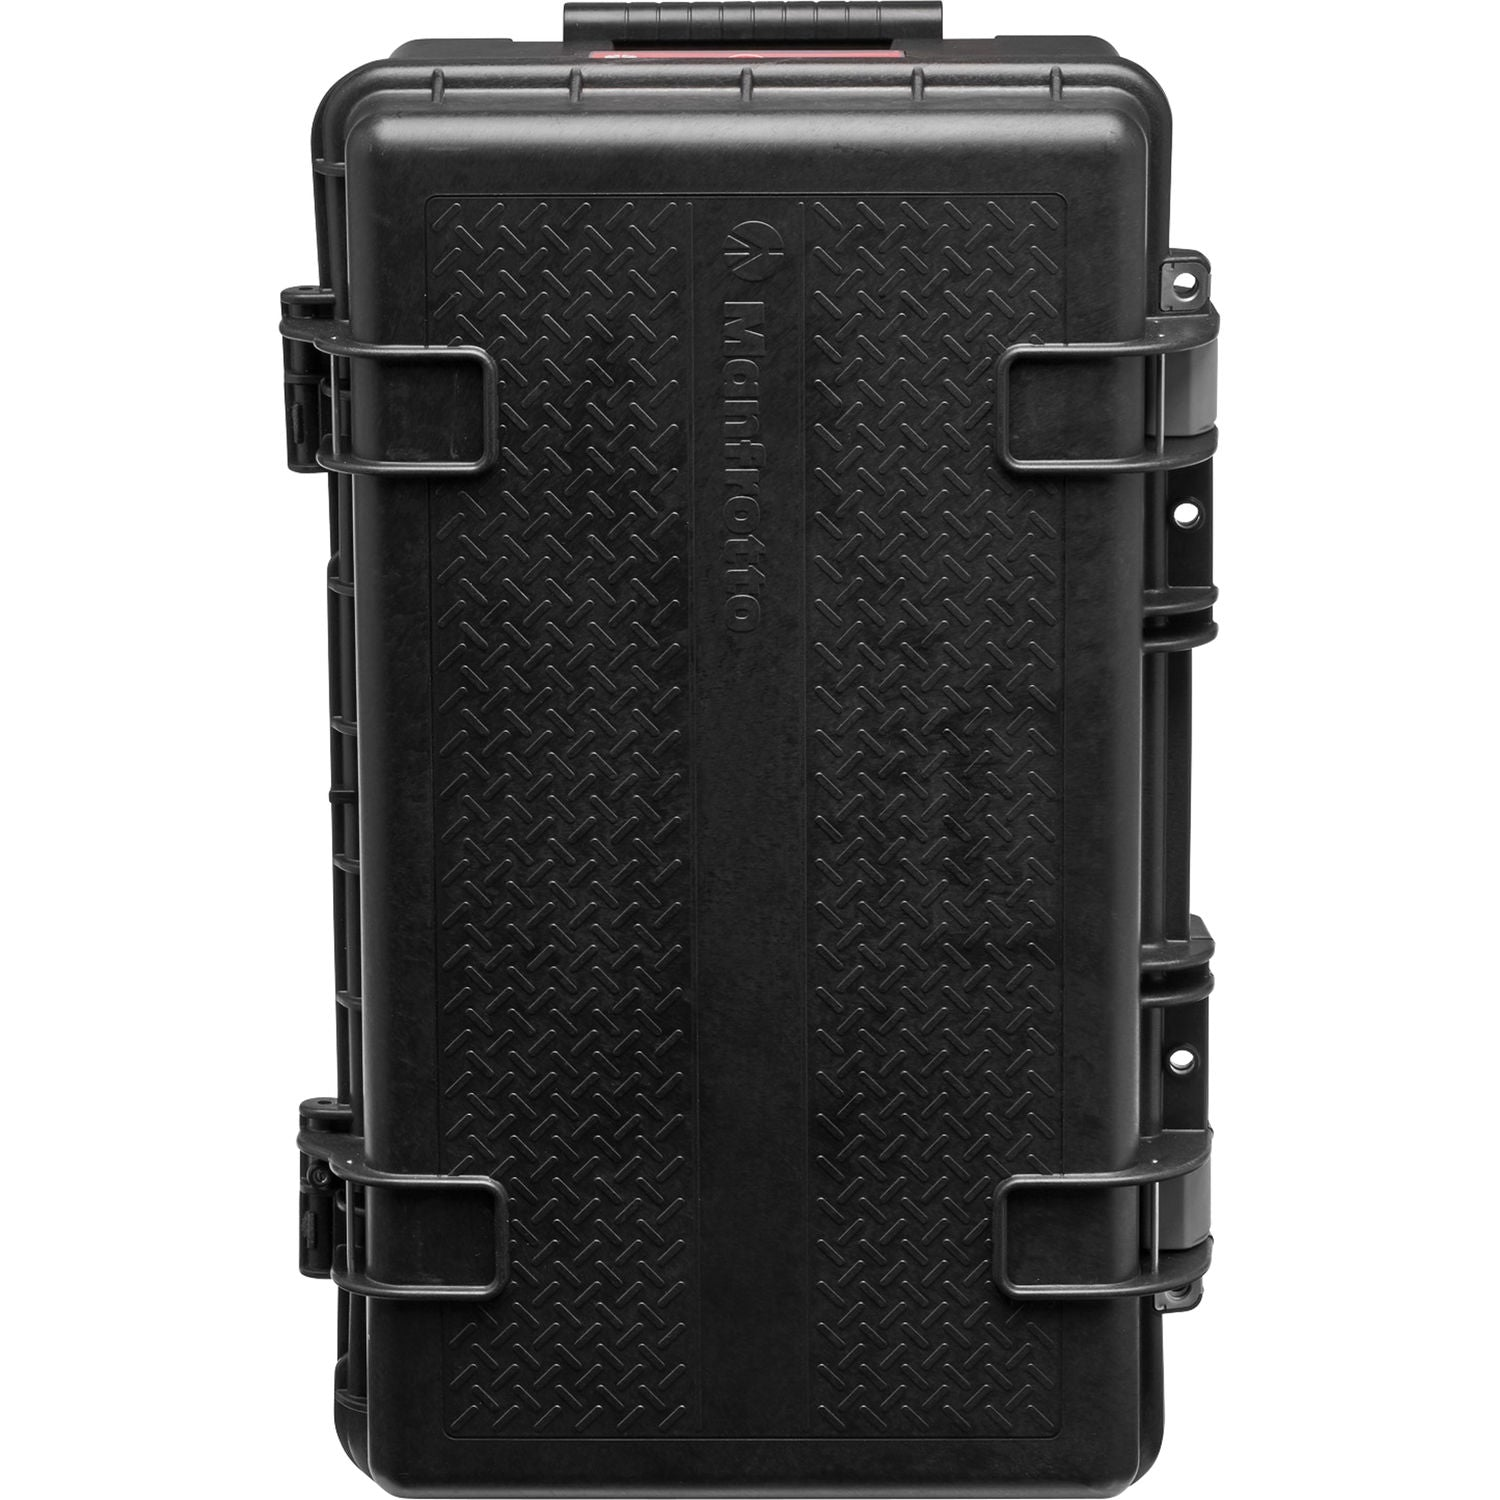 Manfrotto Pro Light Reloader Tough-55 High Lid Carry-On Camera Rollerbag (Black)